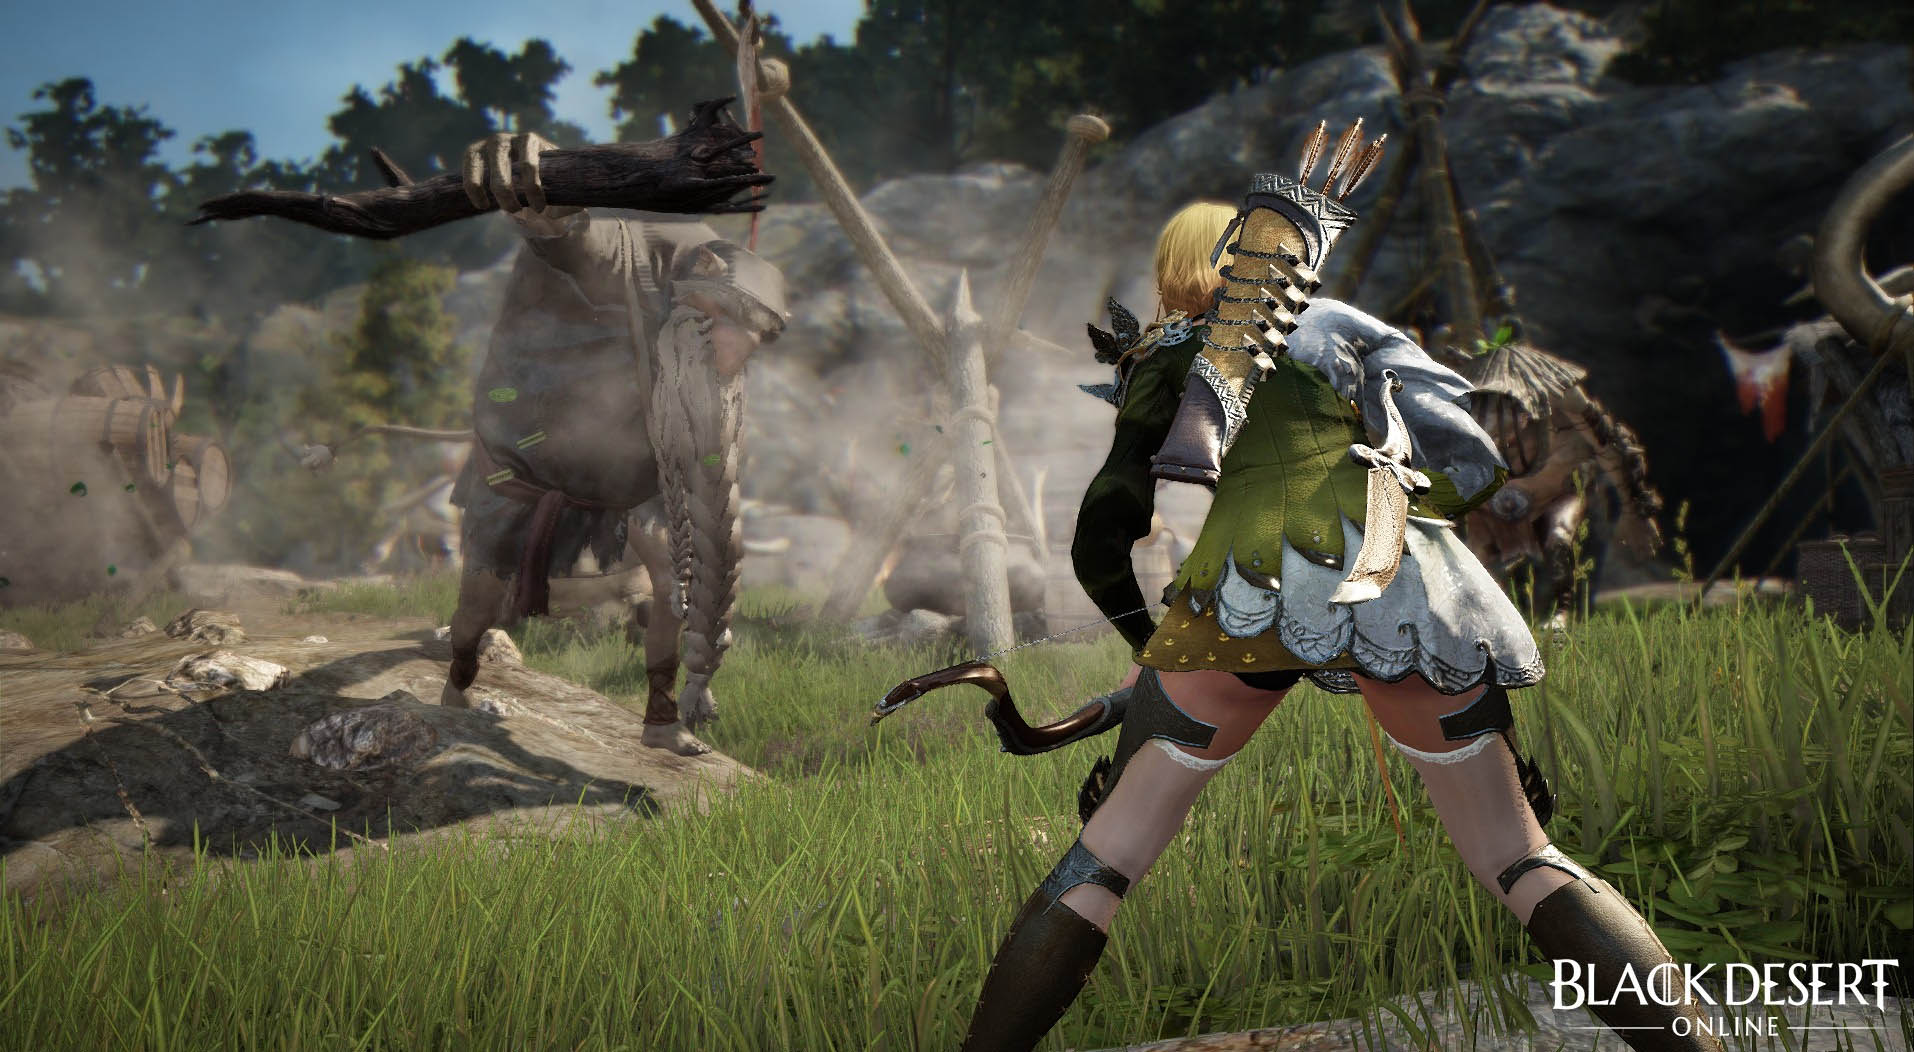 Black Desert Online Review 2020.Black Desert Producer Talks Playstation 4 Crossplay